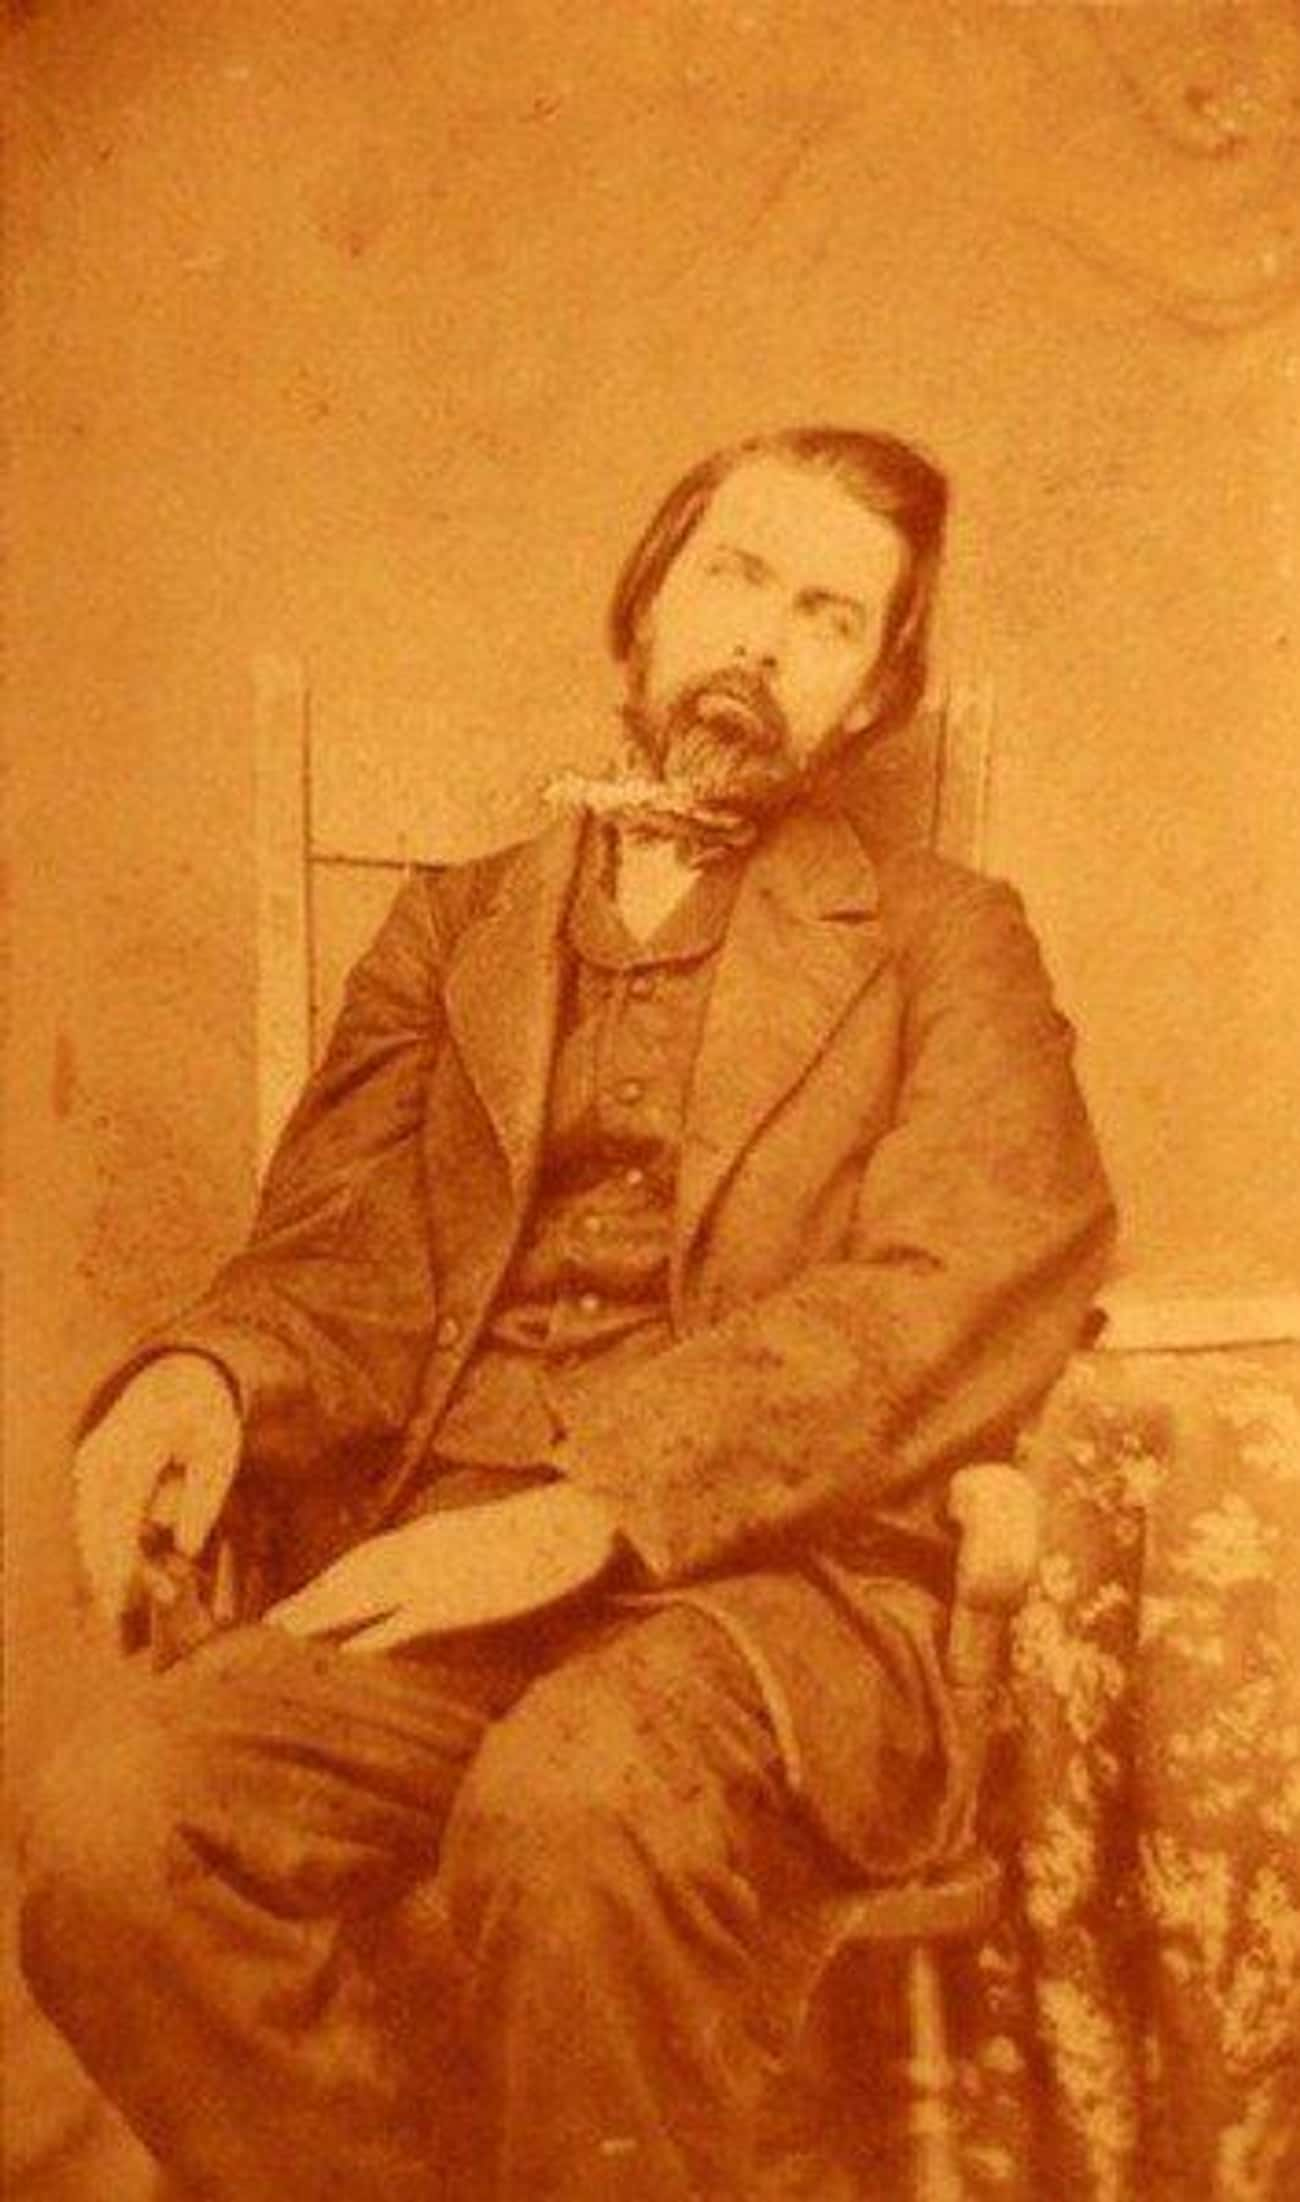 Post-Mortem Photograph, Late 1 is listed (or ranked) 2 on the list 15 Unsettling Photos of the Wild West